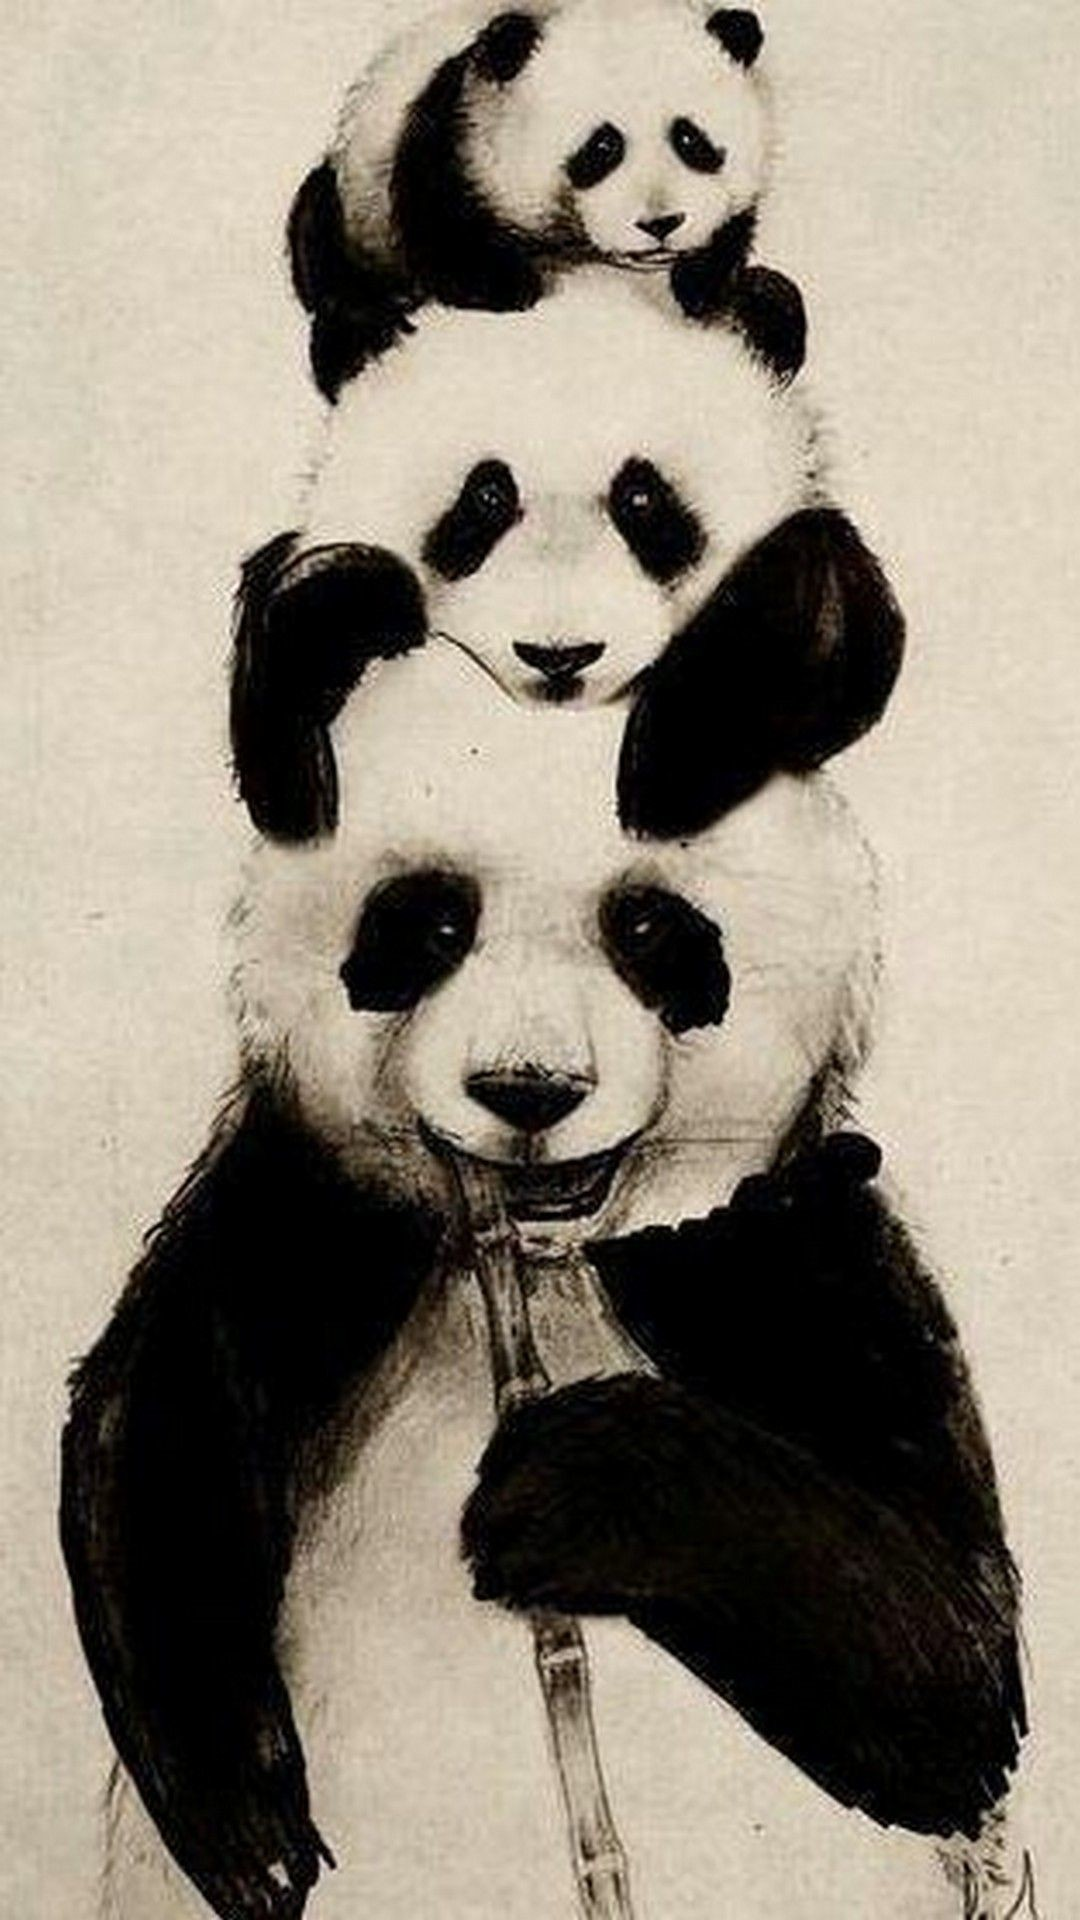 Res: 1080x1920, Cute Panda Wallpaper Android   Best HD Wallpapers